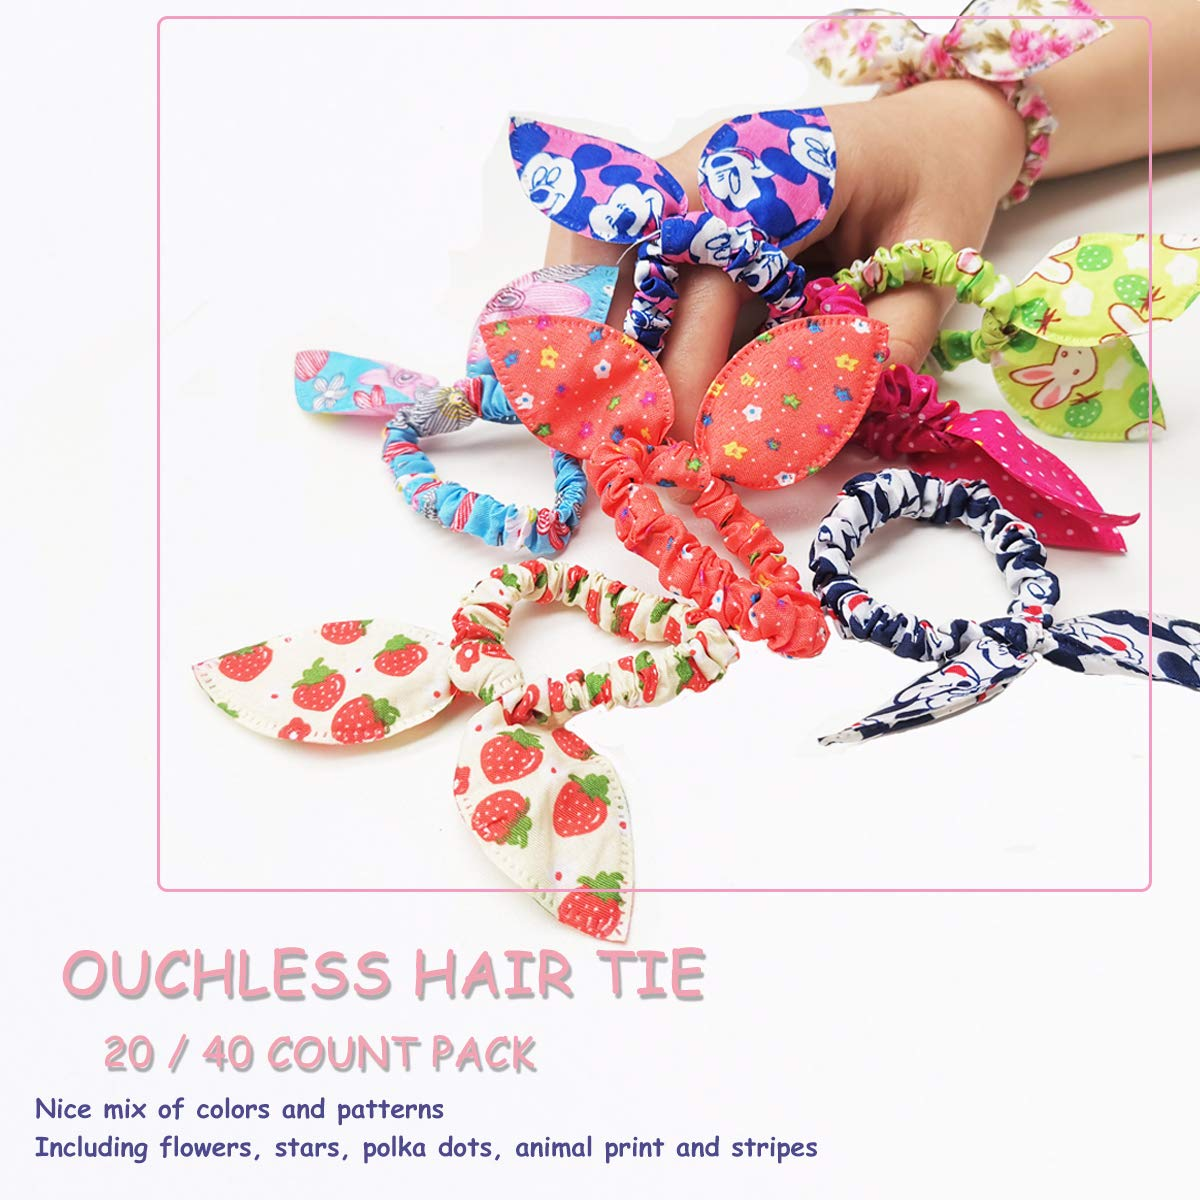 Tsful 20pcs Baby Hair Ties for Toddler Girls Cute Small Elastic Bow Hair Scrunchies Ponytail Holders for Kids